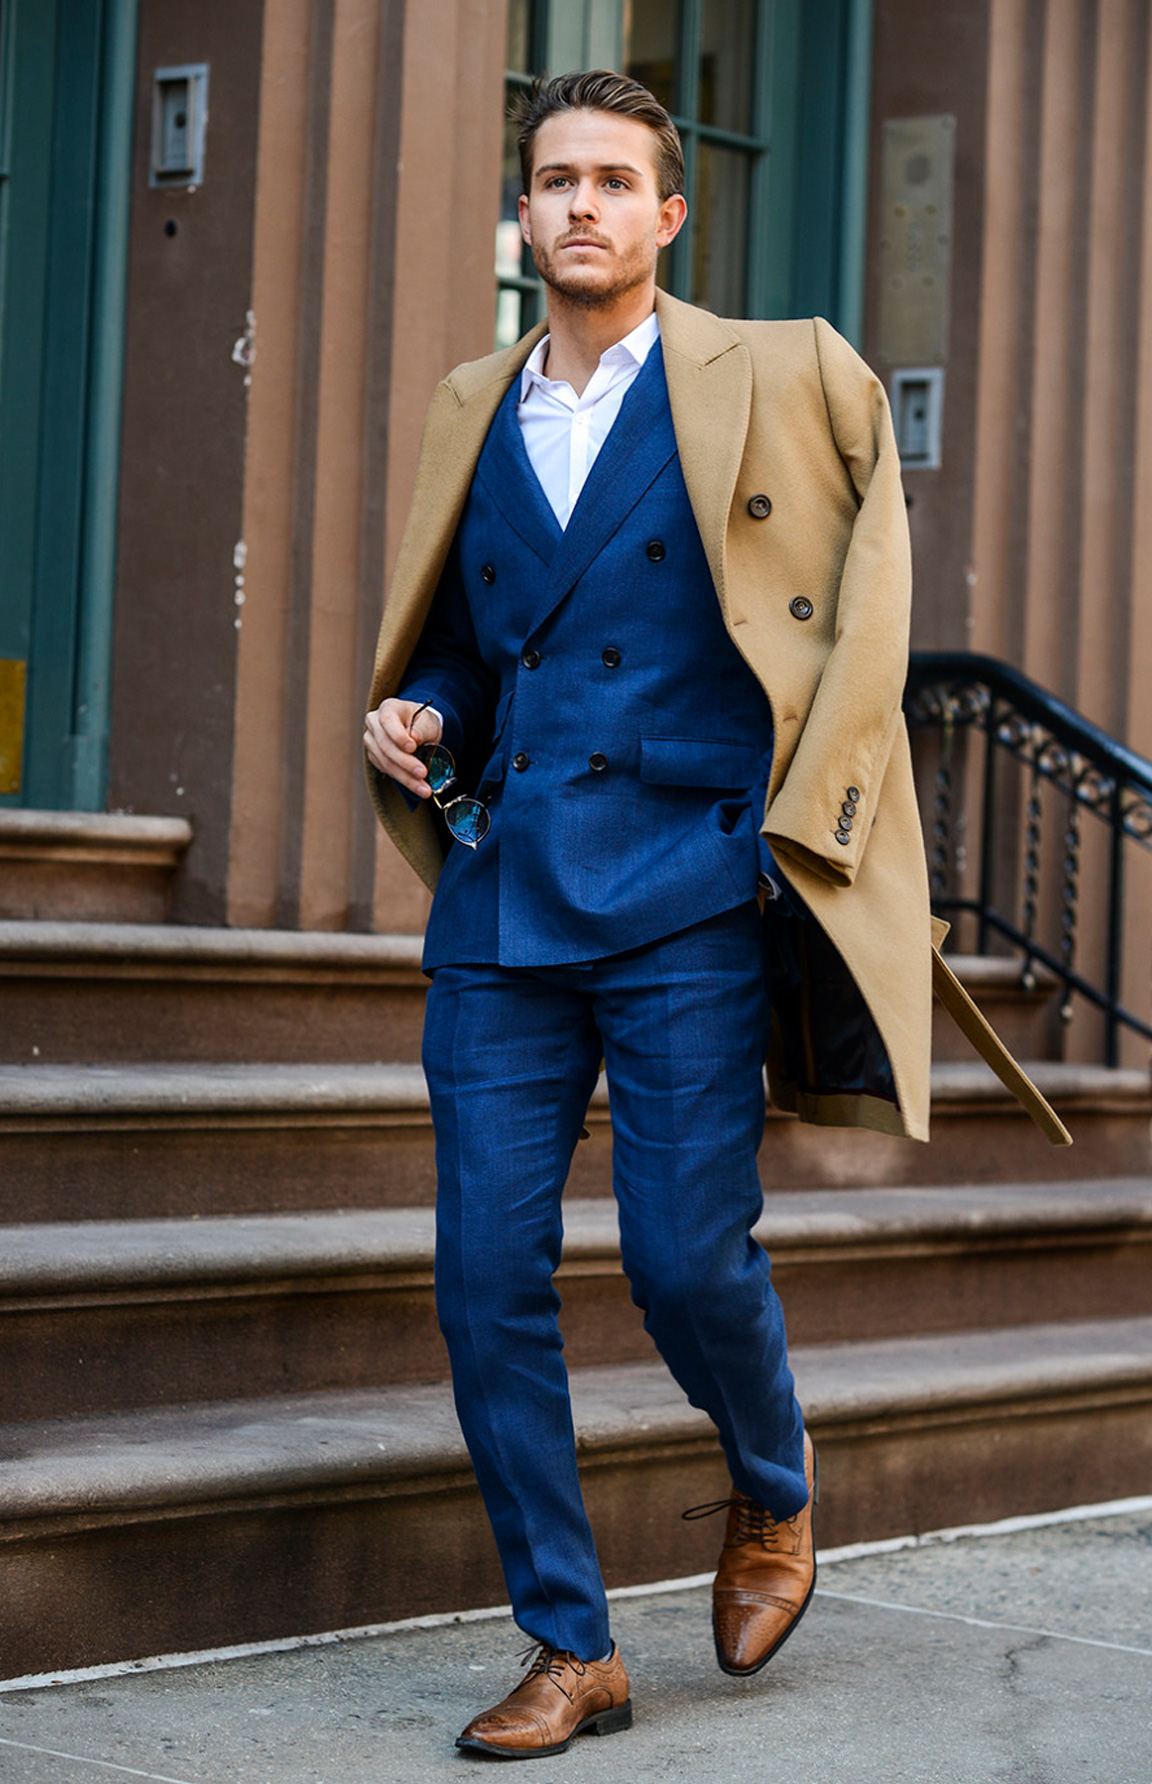 Menswear Influencer Adam Gallagher in an Indochino custom suit.